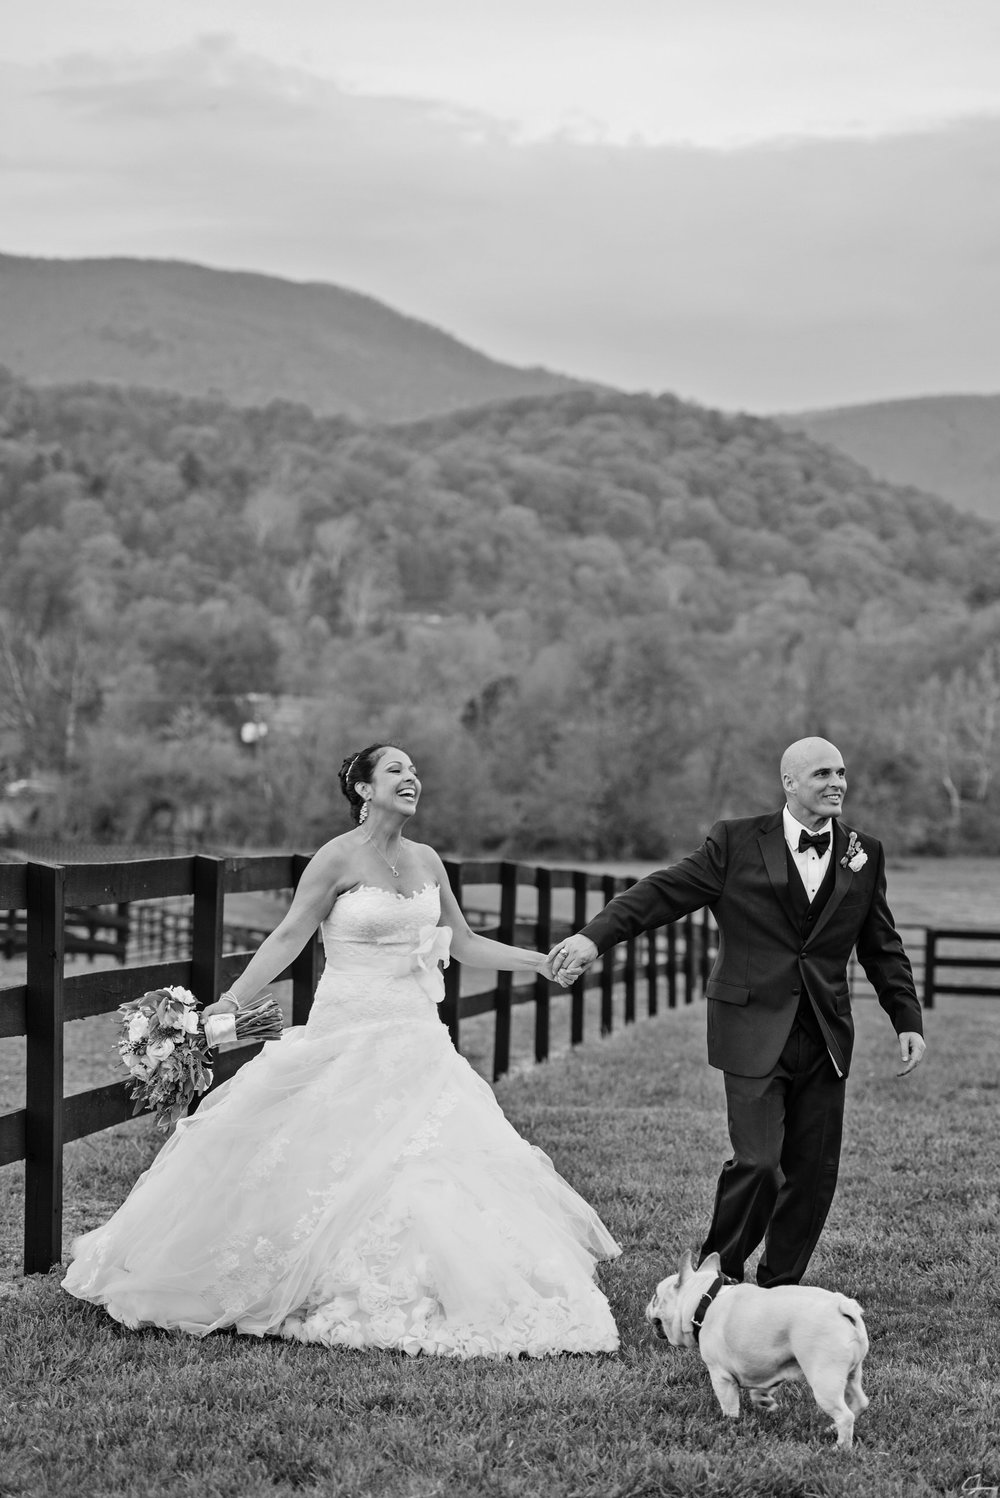 KingFamilyVineyardWedding-Karla&Paul-95.jpg